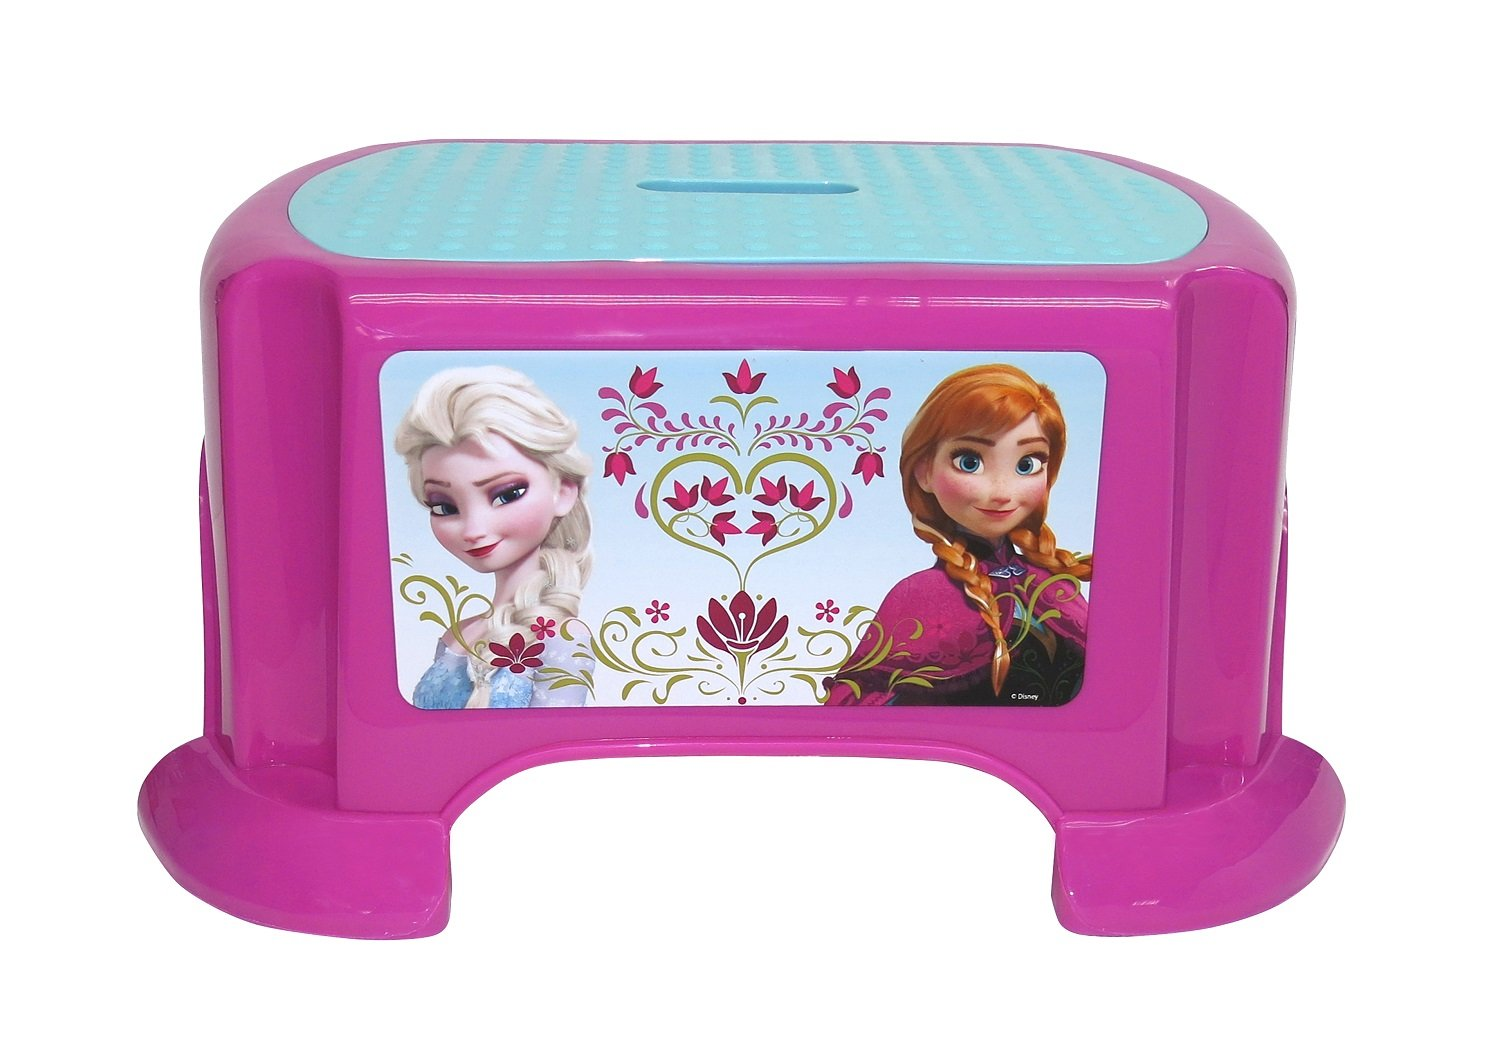 sc 1 st  Amazon.com & Amazon.com: Kids Only! Disney Frozen Step Stool: Toys u0026 Games islam-shia.org